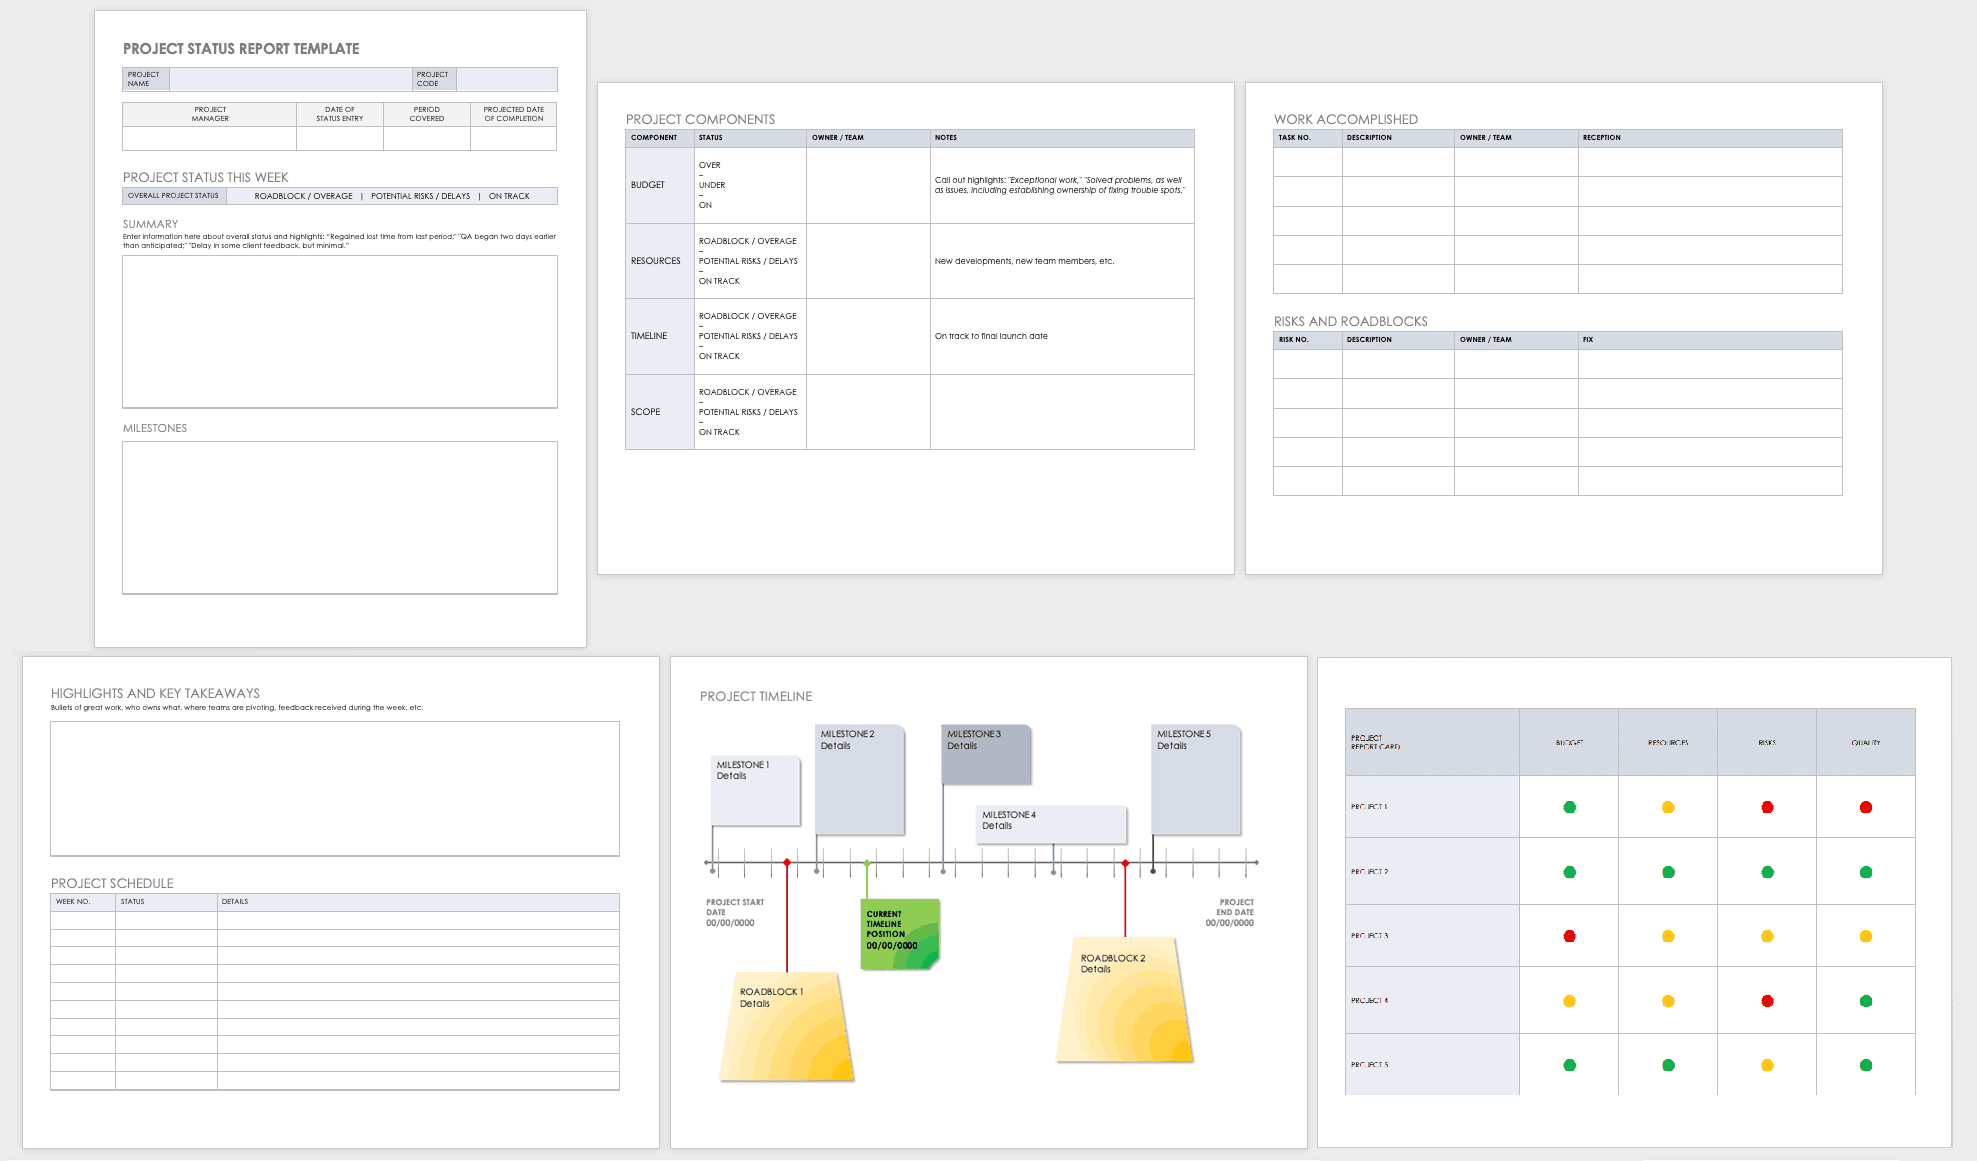 Free Project Report Templates   Smartsheet Regarding Check Out Report Template